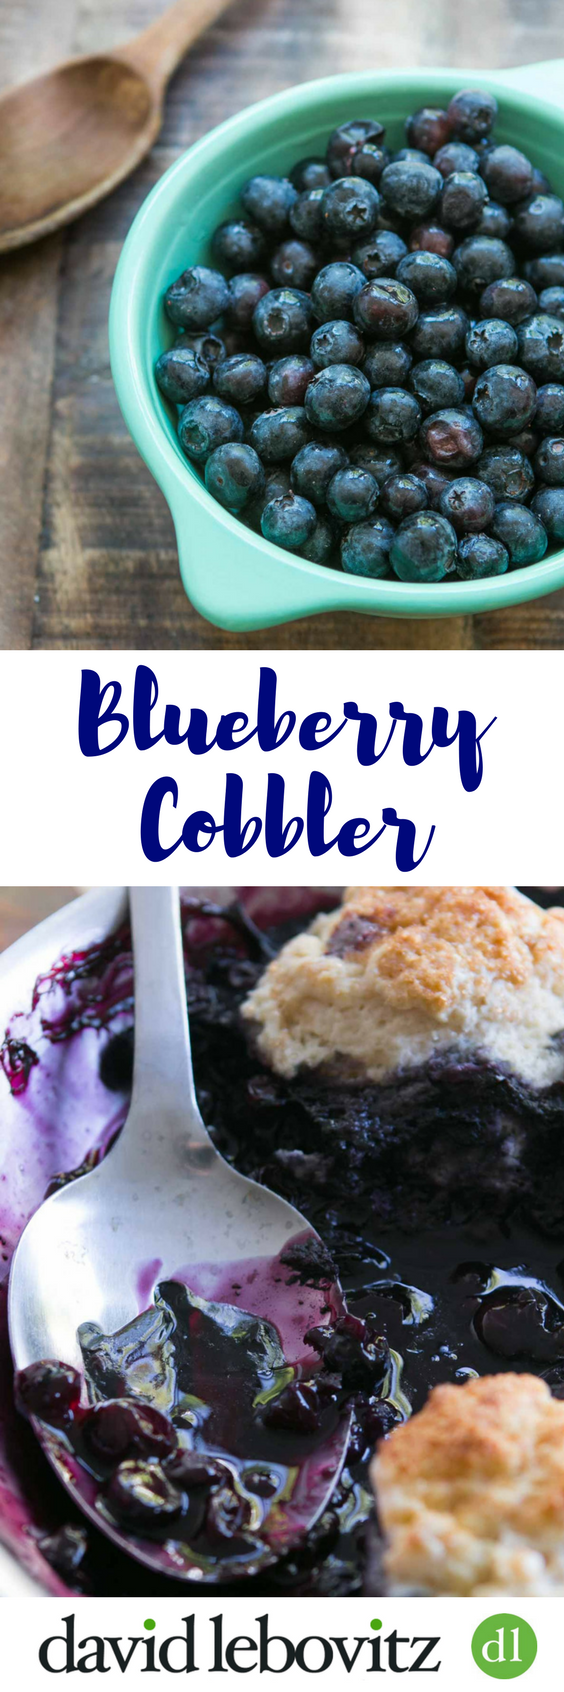 The classic seasonal fruit dessert, made with fresh blueberries!